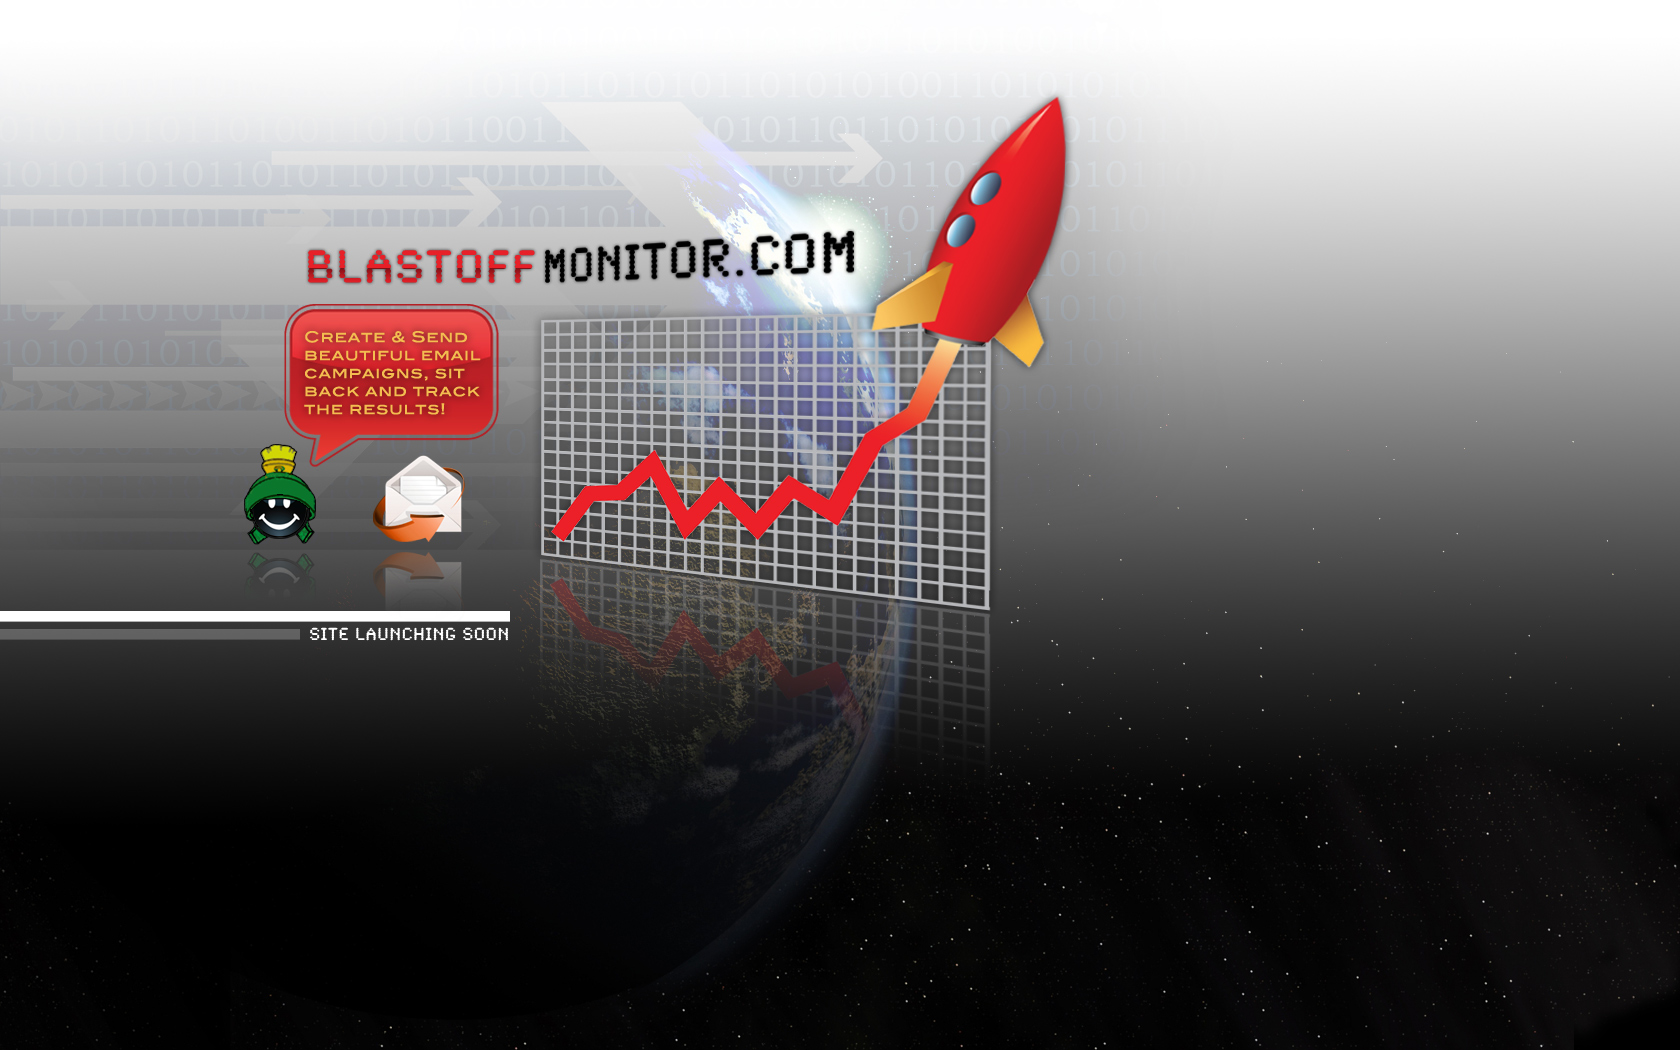 BlastoffMonitor.com Launching Soon